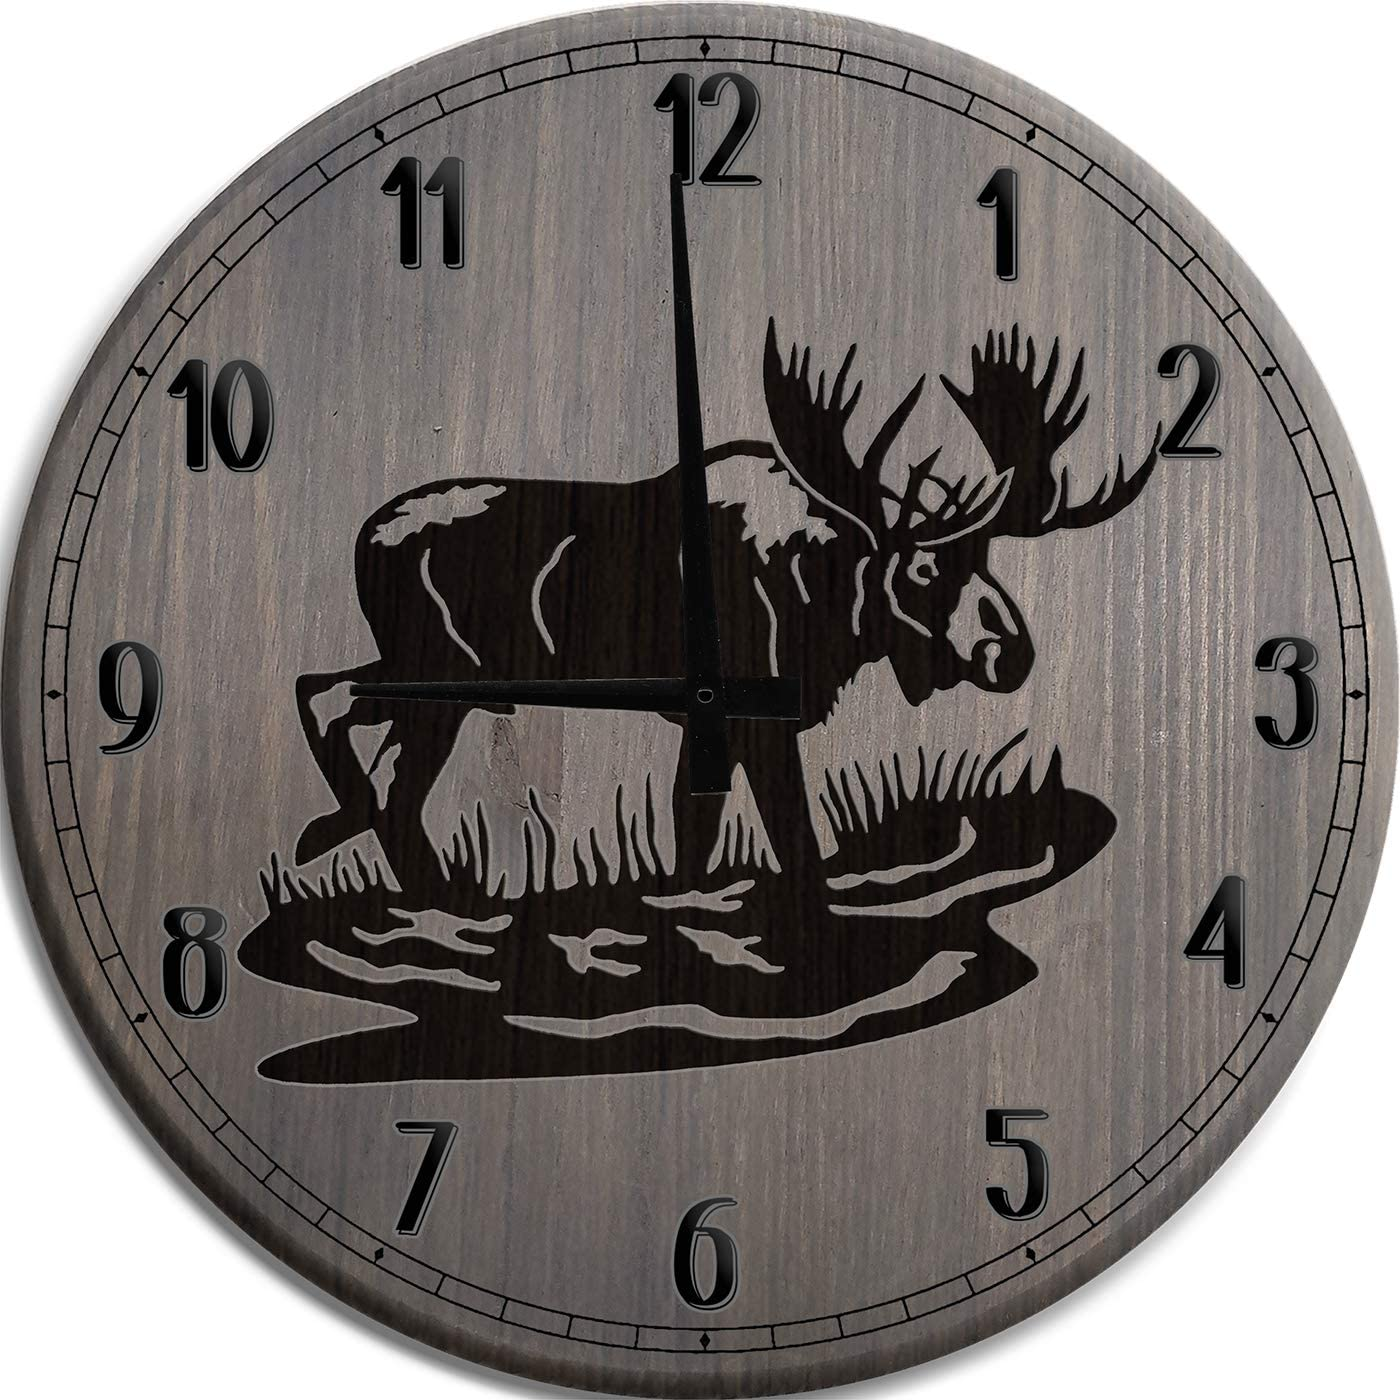 Amazon Com Tba Wall Clock Large Moose Elk Big Game Hunting Clock Man Cave Wall Decor Barnwood Gray 18 Inch Wall Decor Home Kitchen